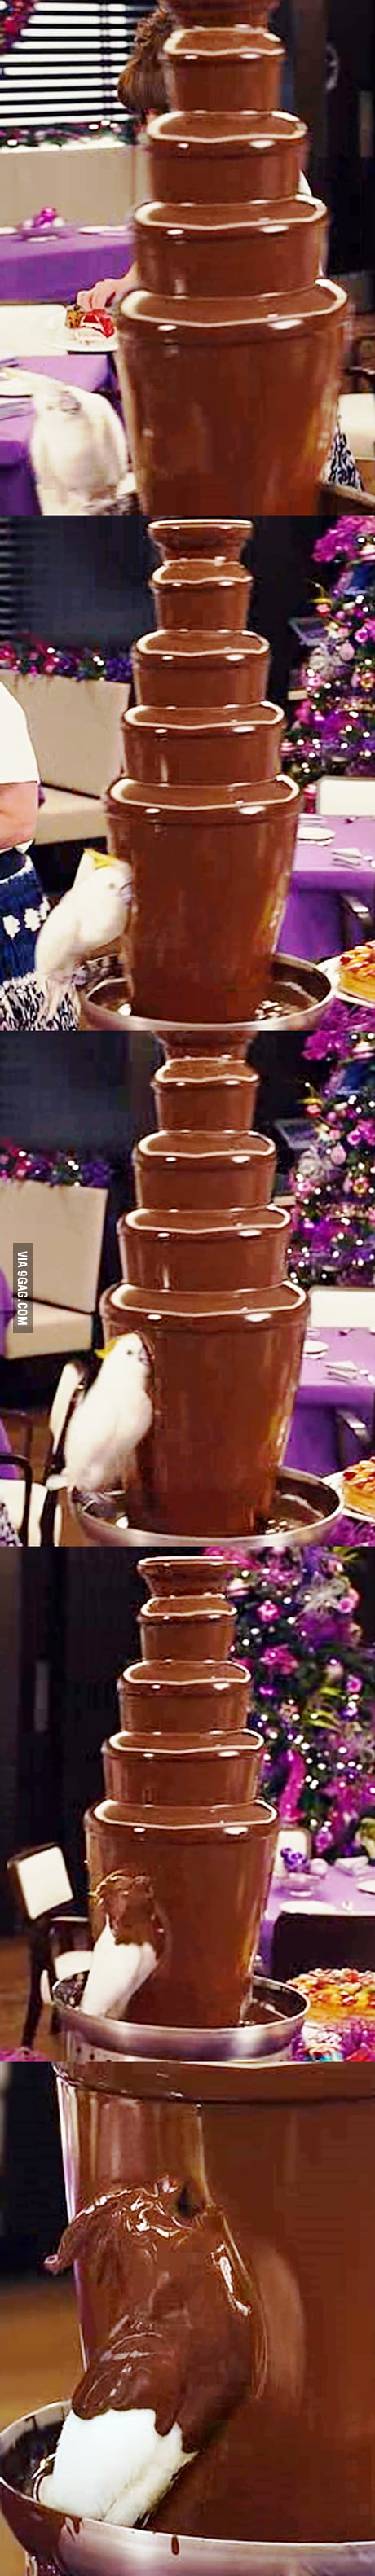 Chocolate addiction lvl : Parrot